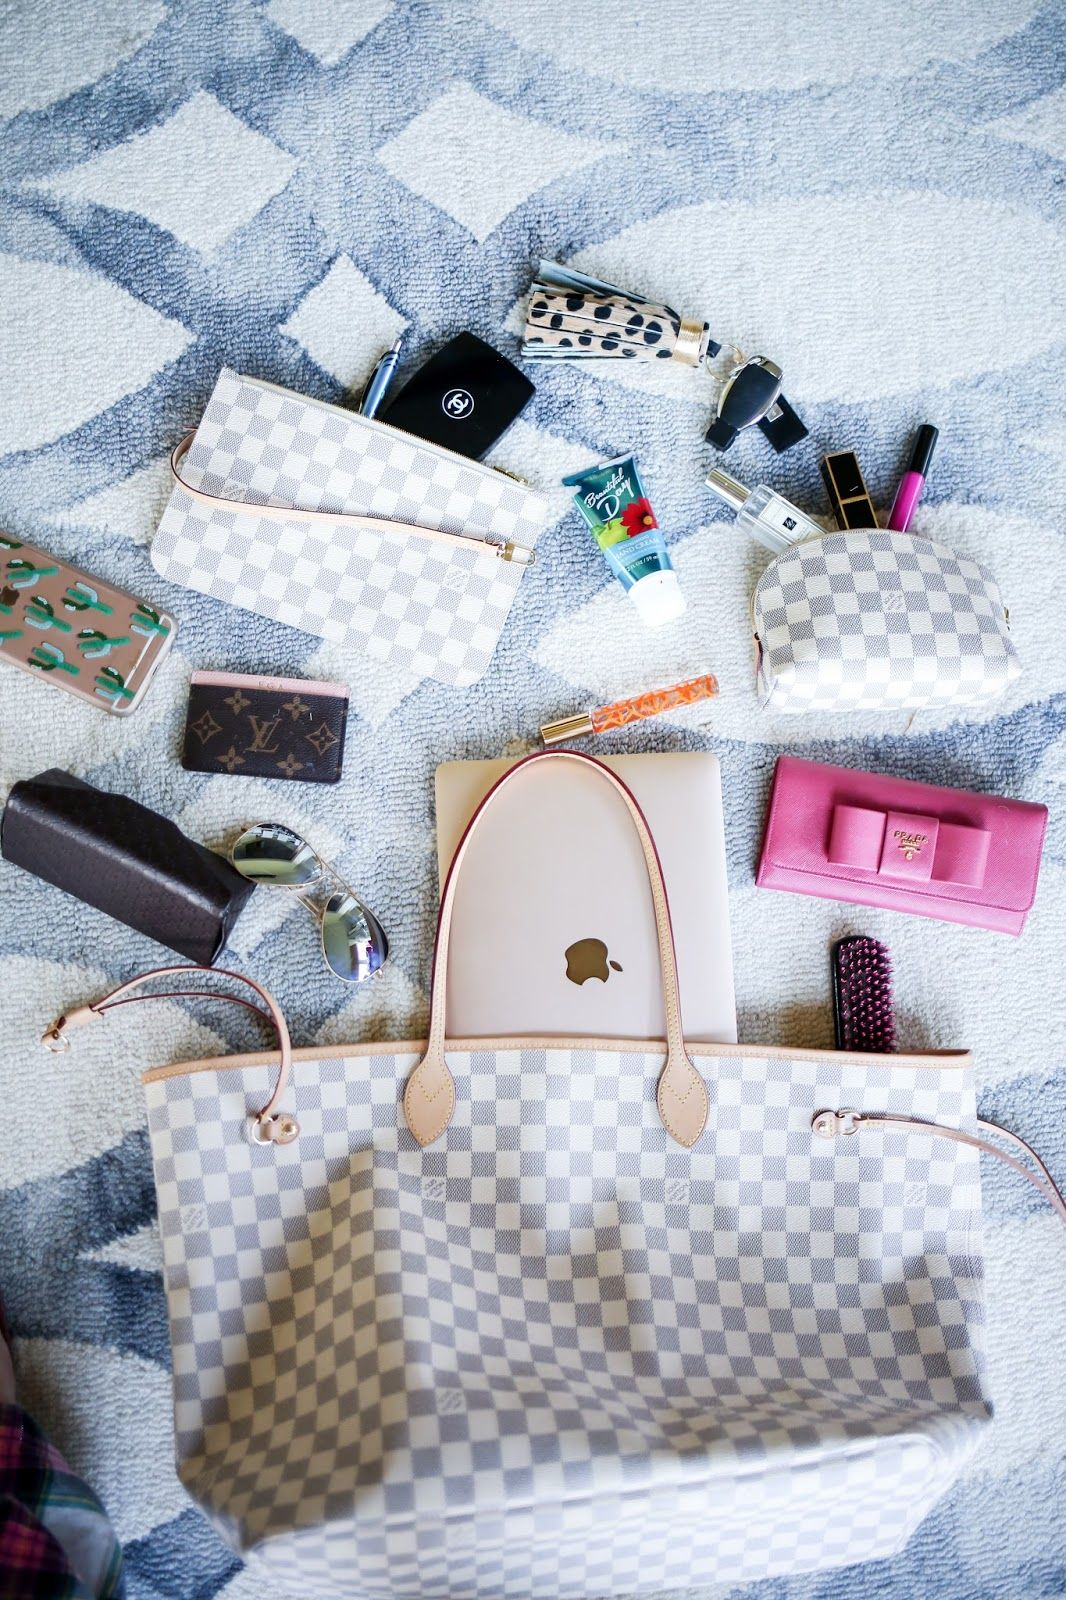 whats in my bag blog post, louis vuitton neverful damier azur GM, louis vuitton